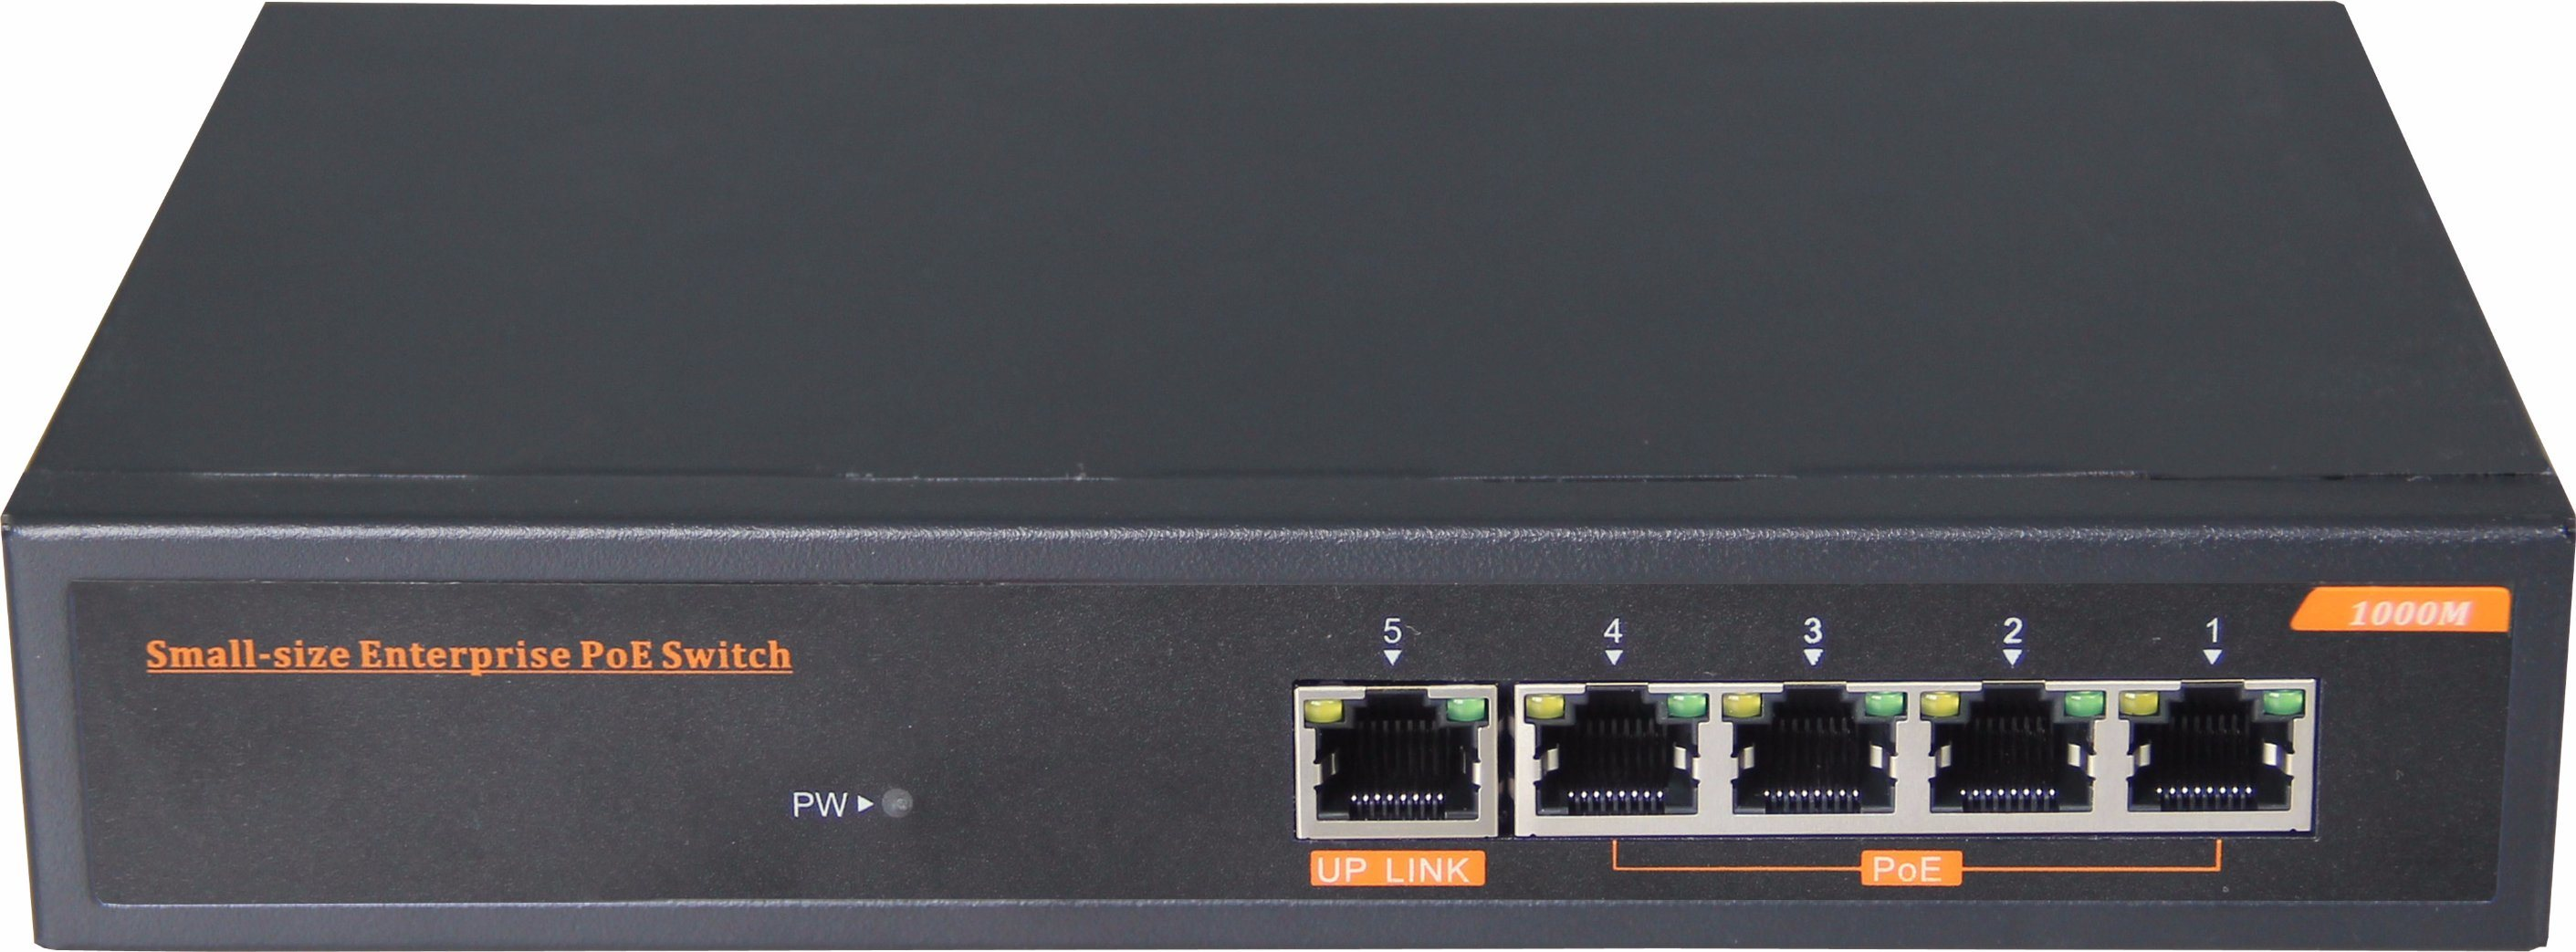 4 Gigabit Port Poe Ethernet Network Switch with 1 Uplink Port